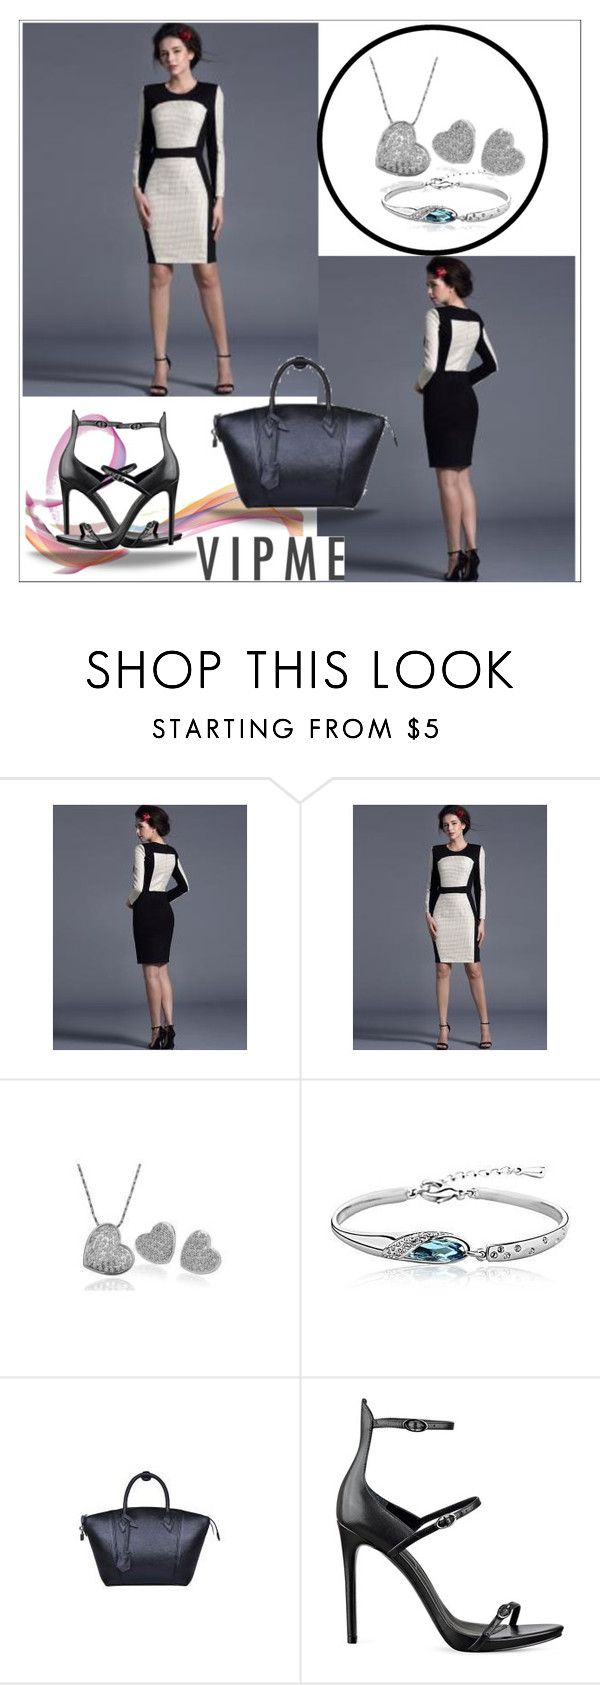 """""""Vipme  10 /30"""" by amira-1-1 ❤ liked on Polyvore featuring Kendall + Kylie, women's clothing, women, female, woman, misses, juniors and vipme"""